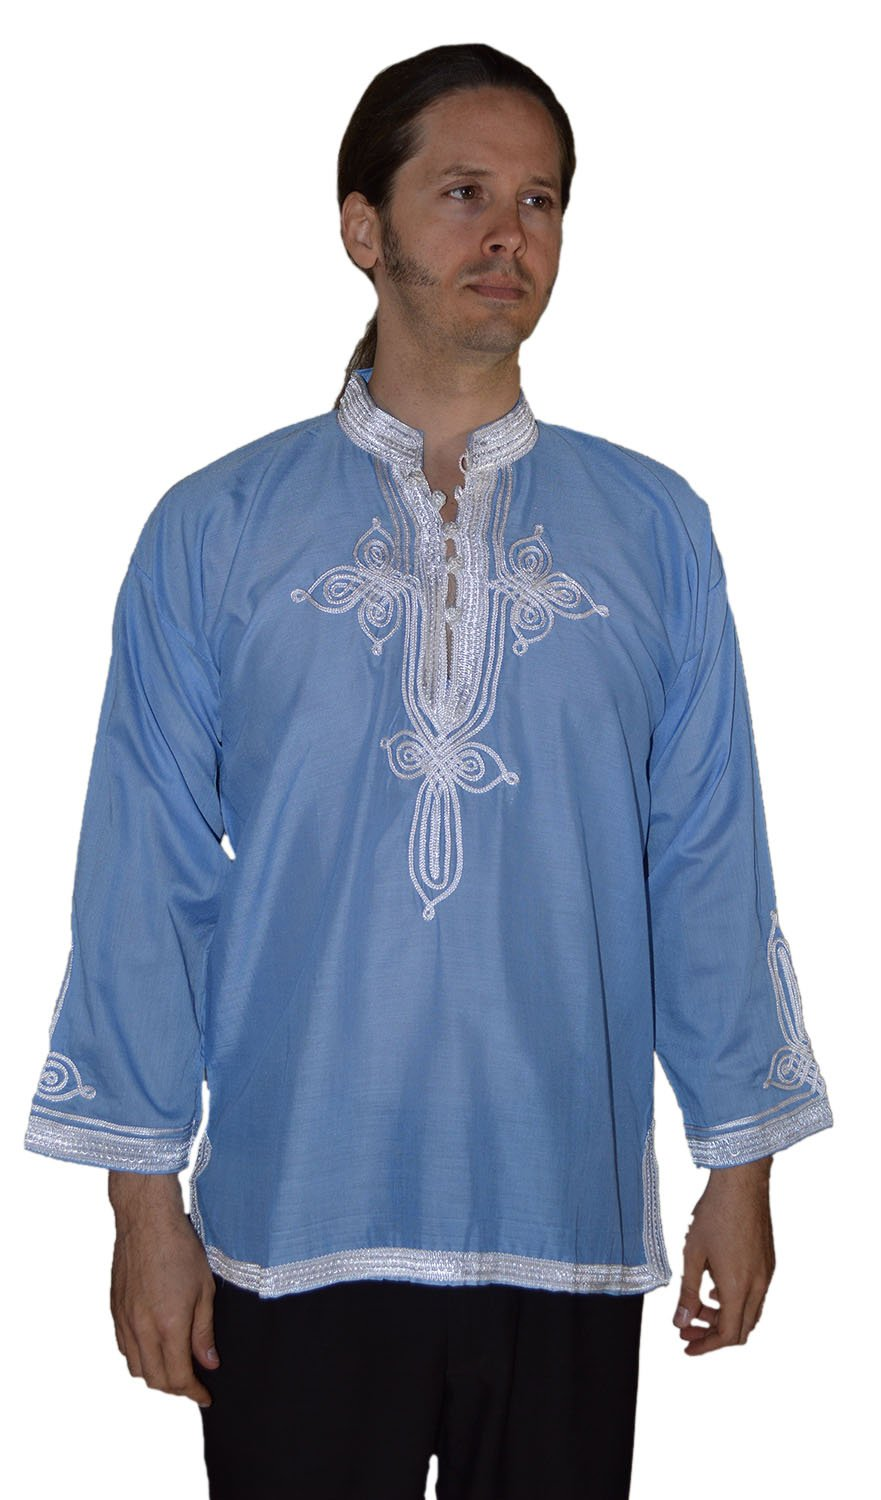 Marrakesh Men Tunic Caftan With White Tread Embroidery Breathable X-large Light BLue